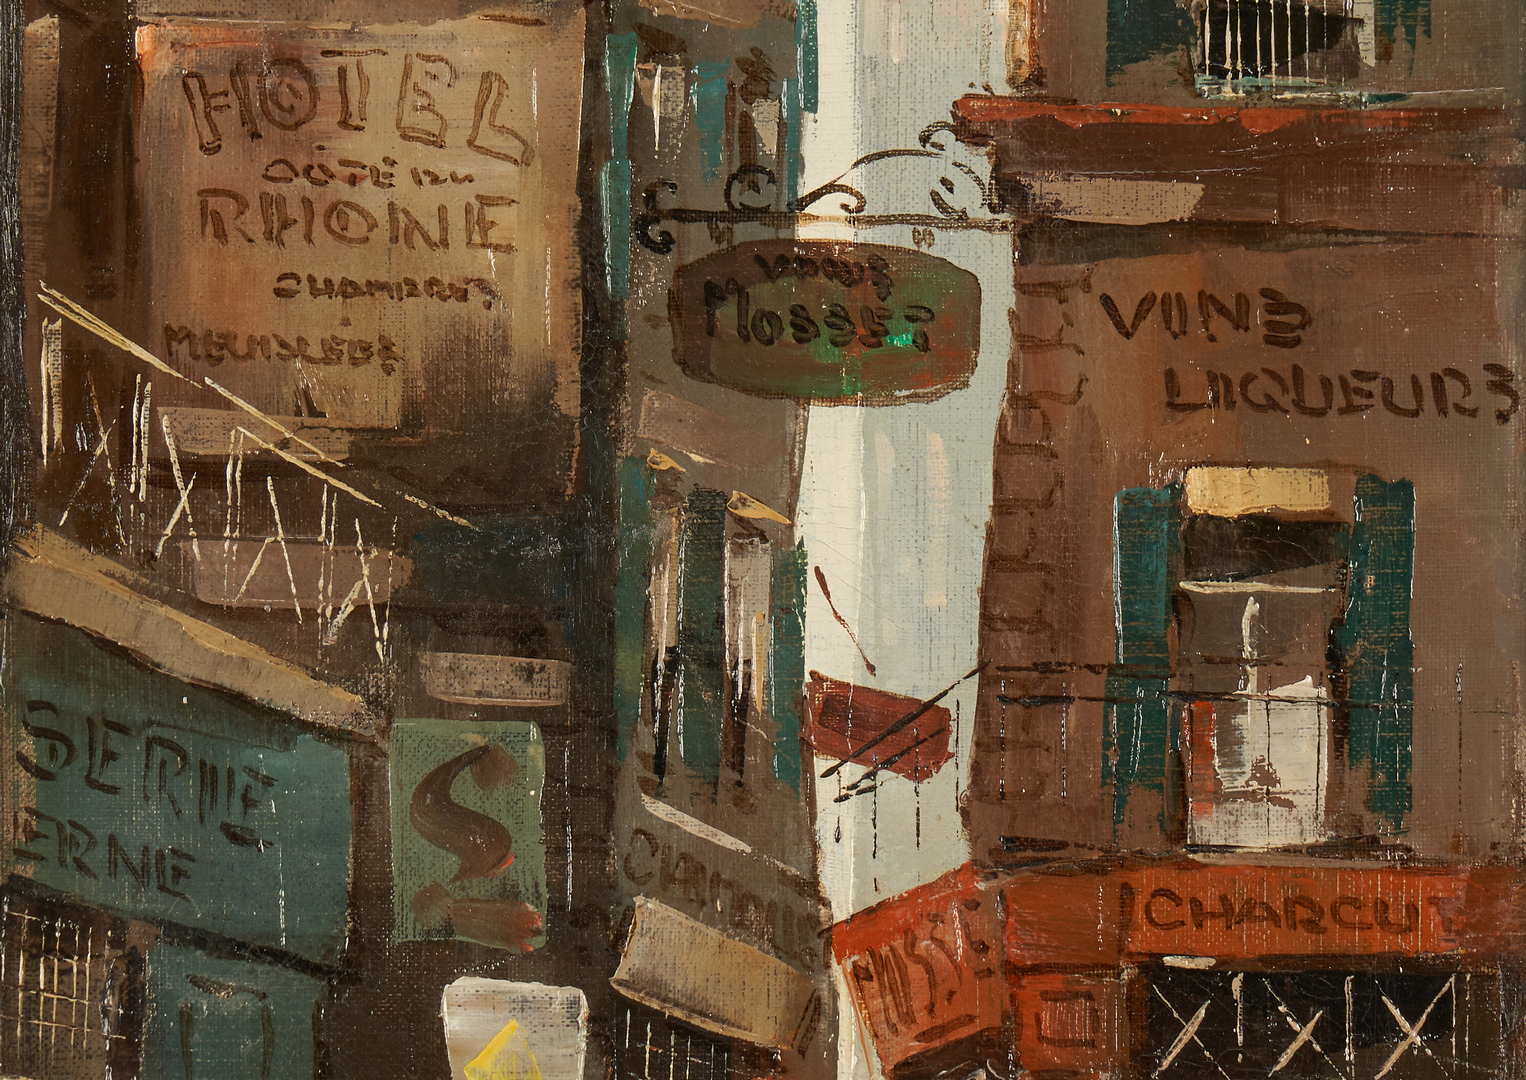 Lot 313: 2 French Street Scenes: Nicola Ortis Poucette and Max Moreau